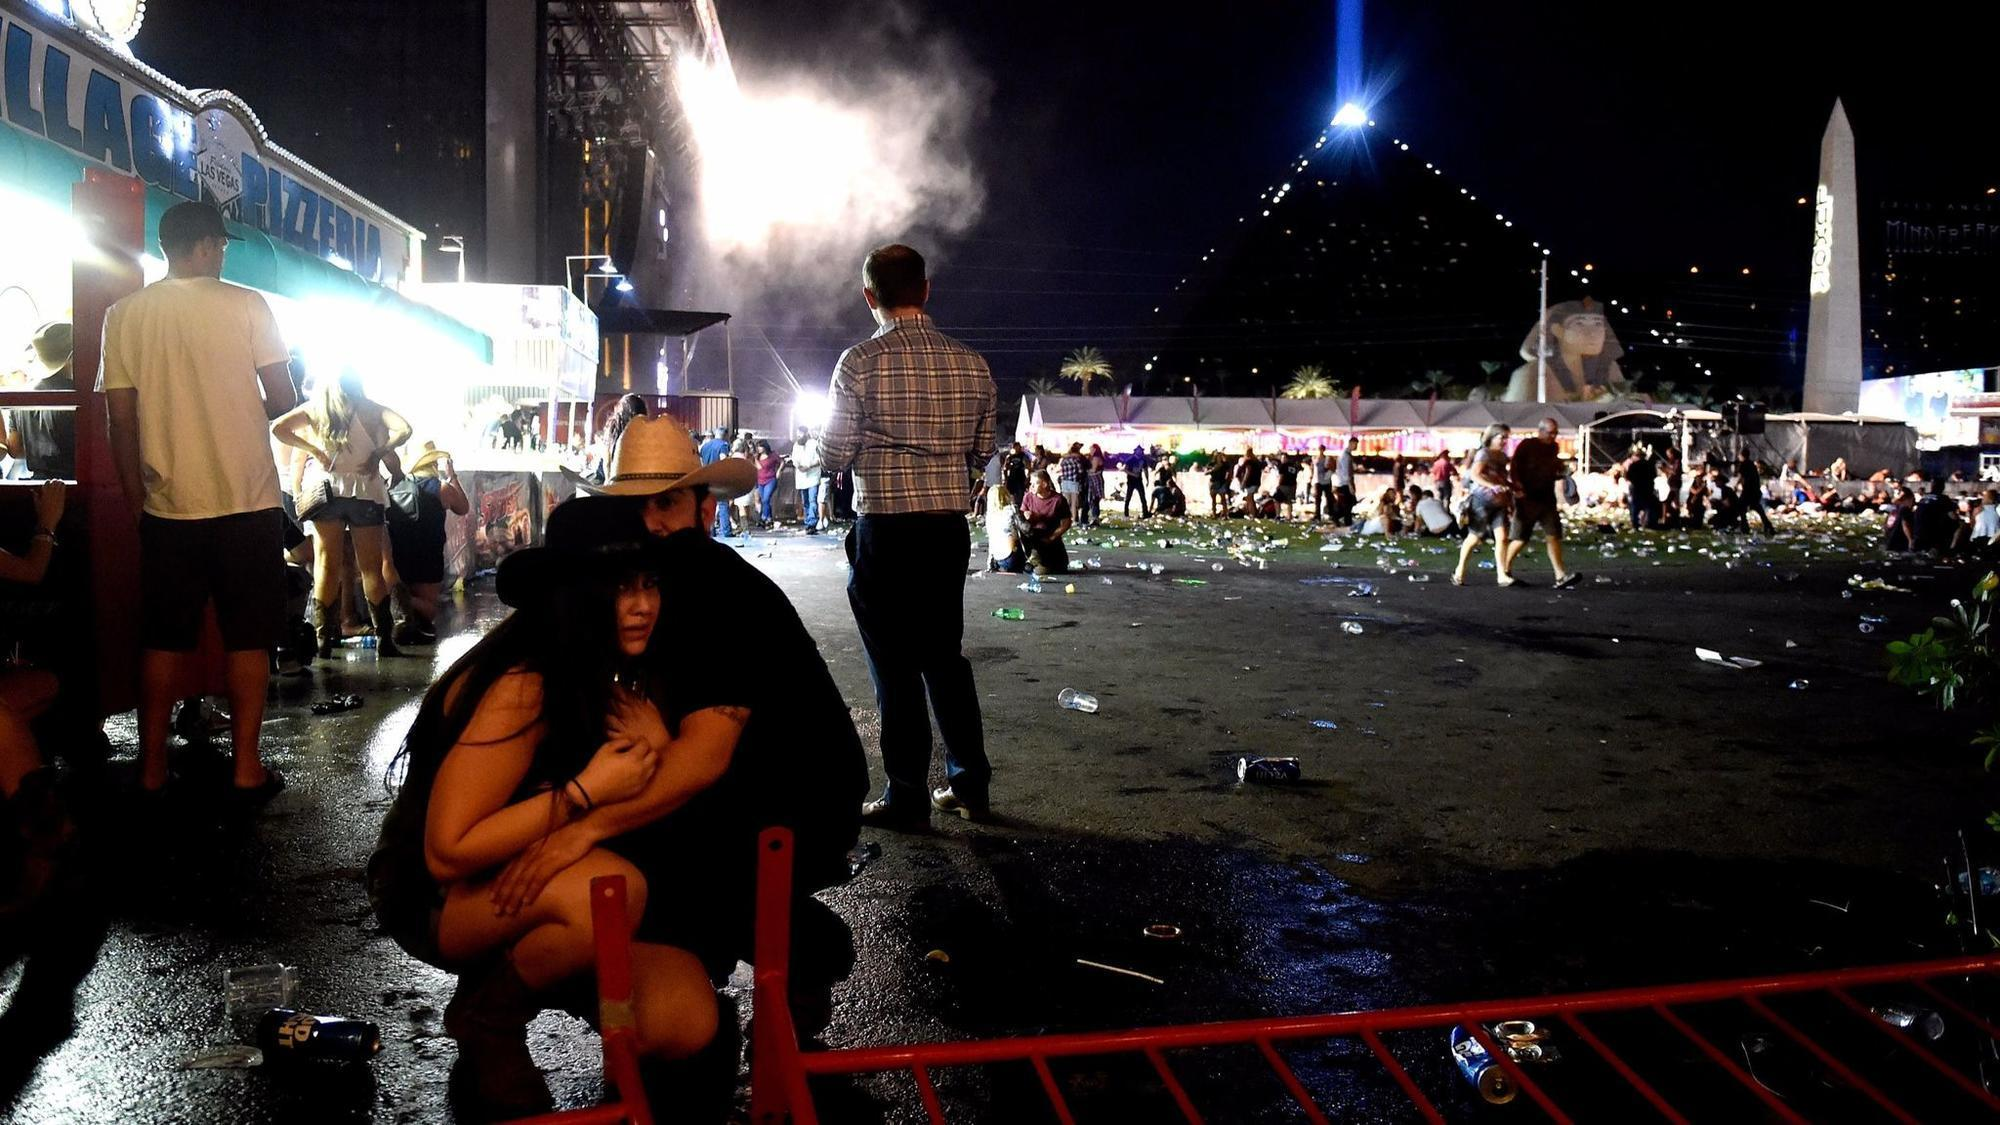 Essential California: Deadly Shooting At a Las Vegas Concert